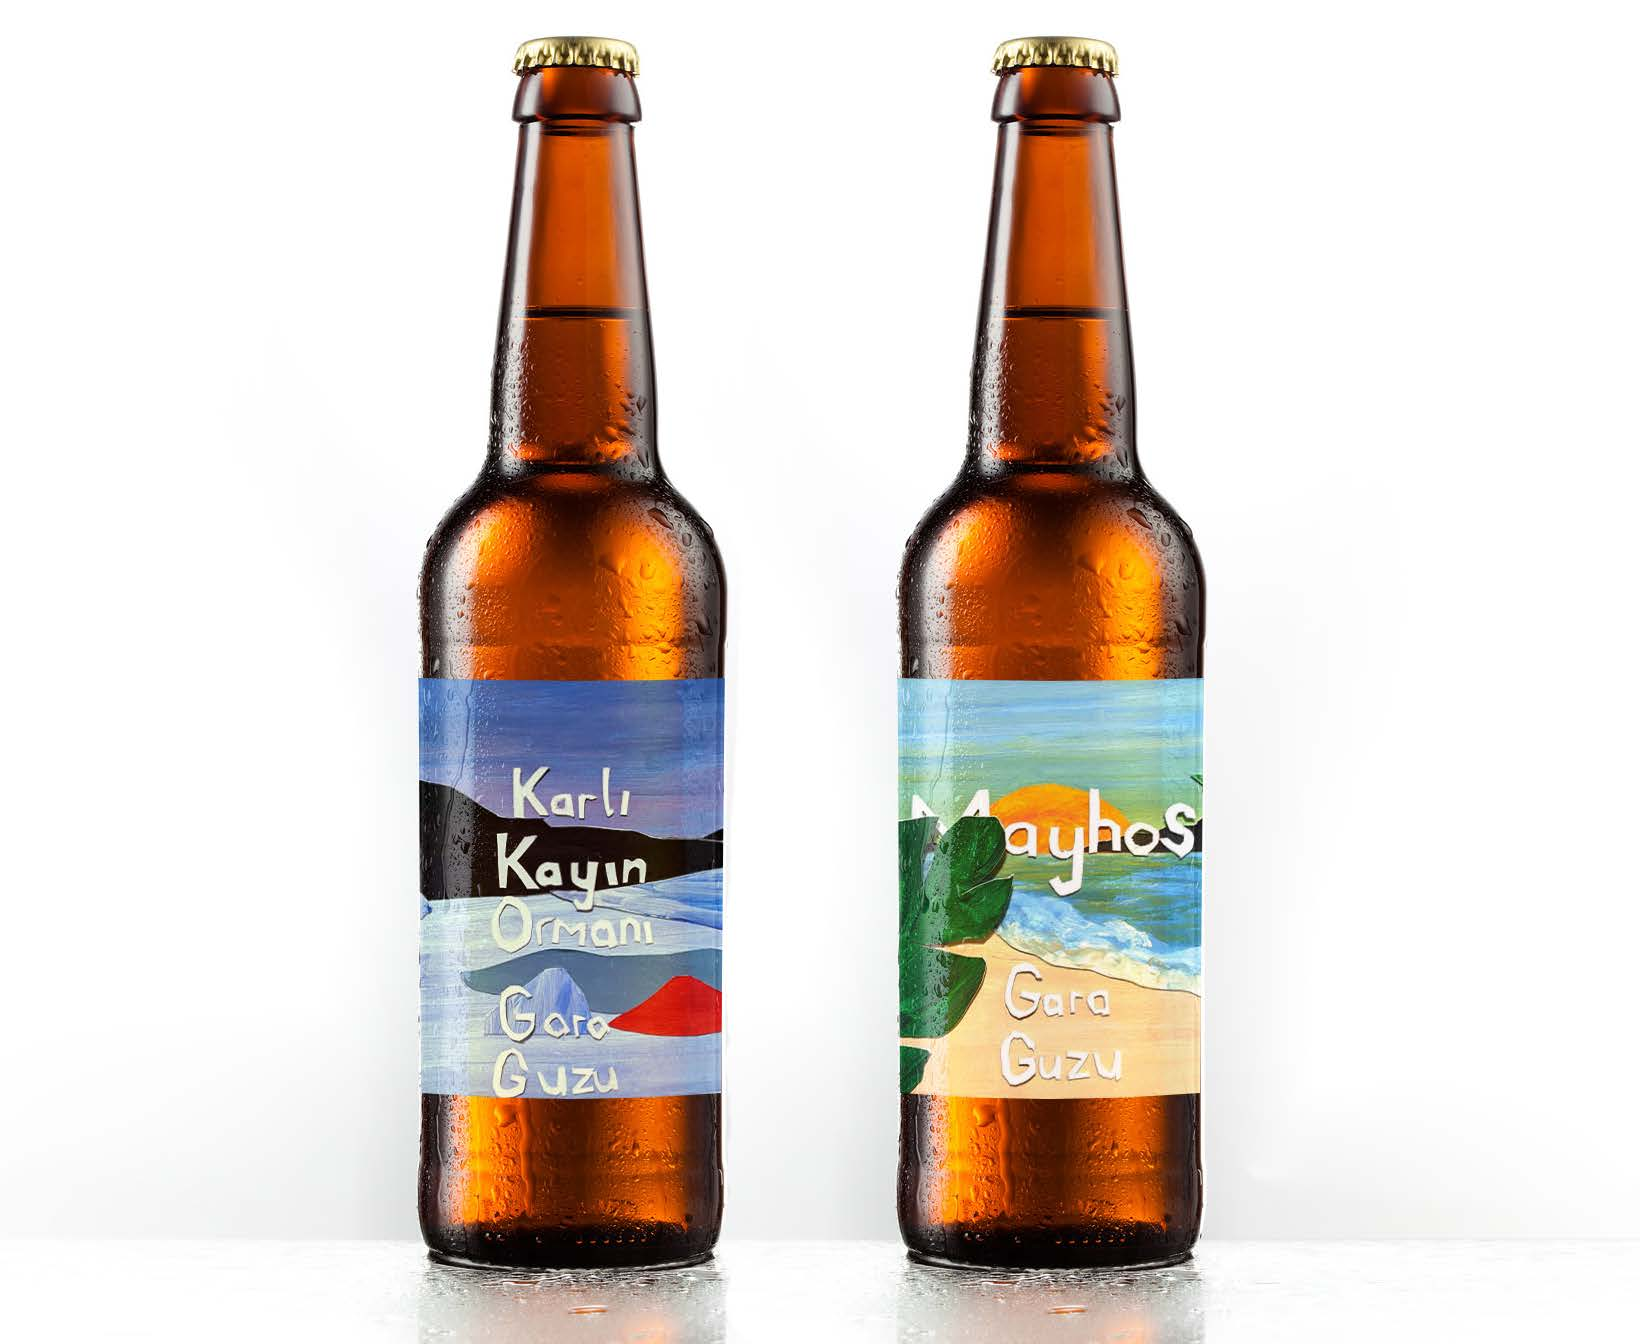 Two beer bottles with illustrated labels